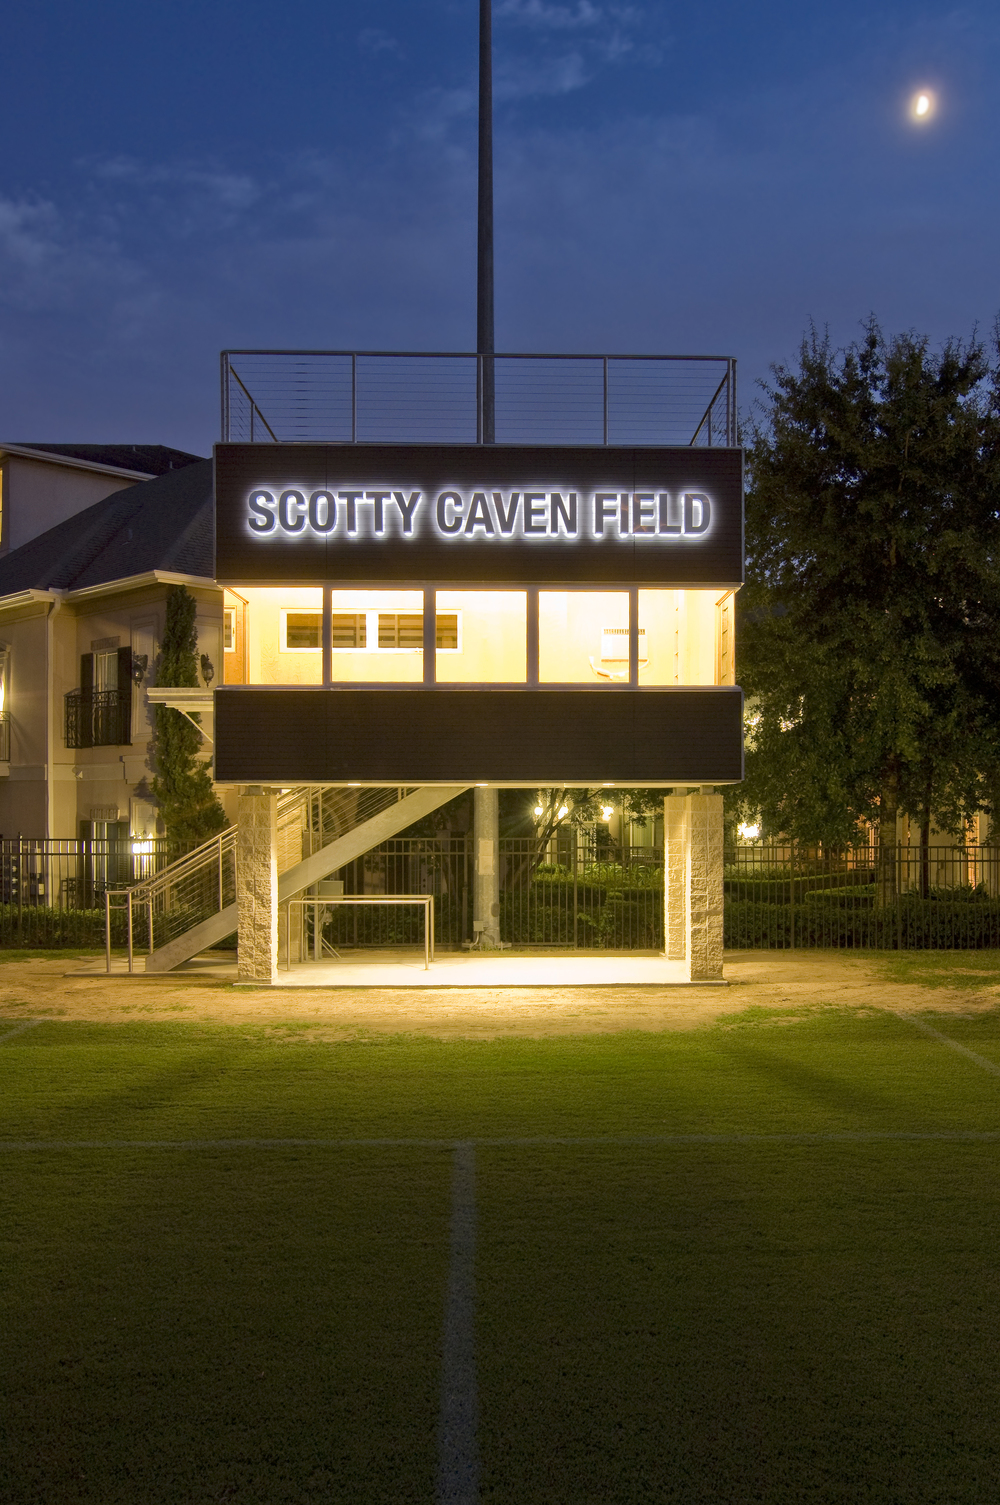 Scotty Caven Press Box